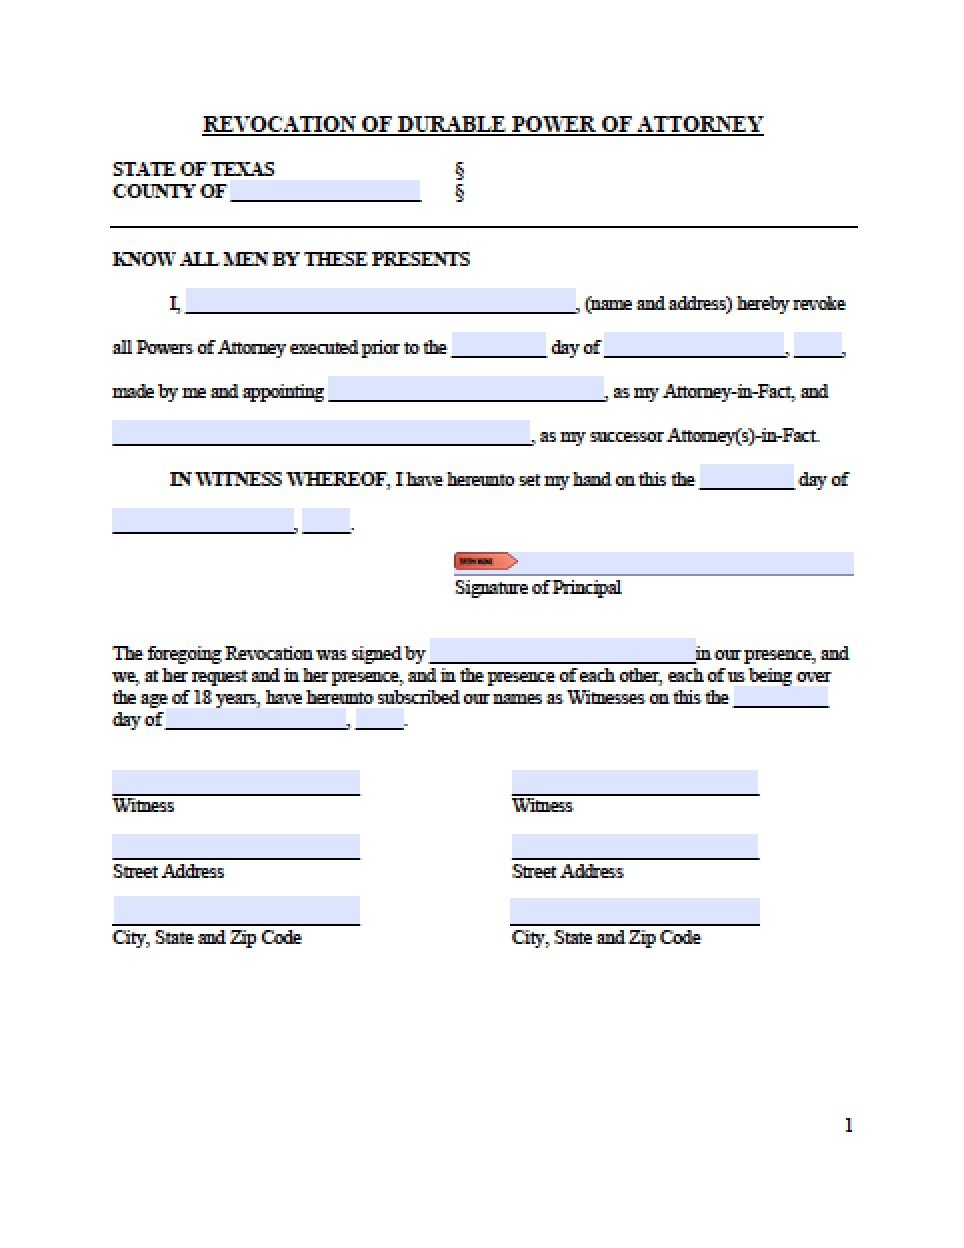 Texas Statutory Durable Power Of Attorney Form From The Texas State Legislature